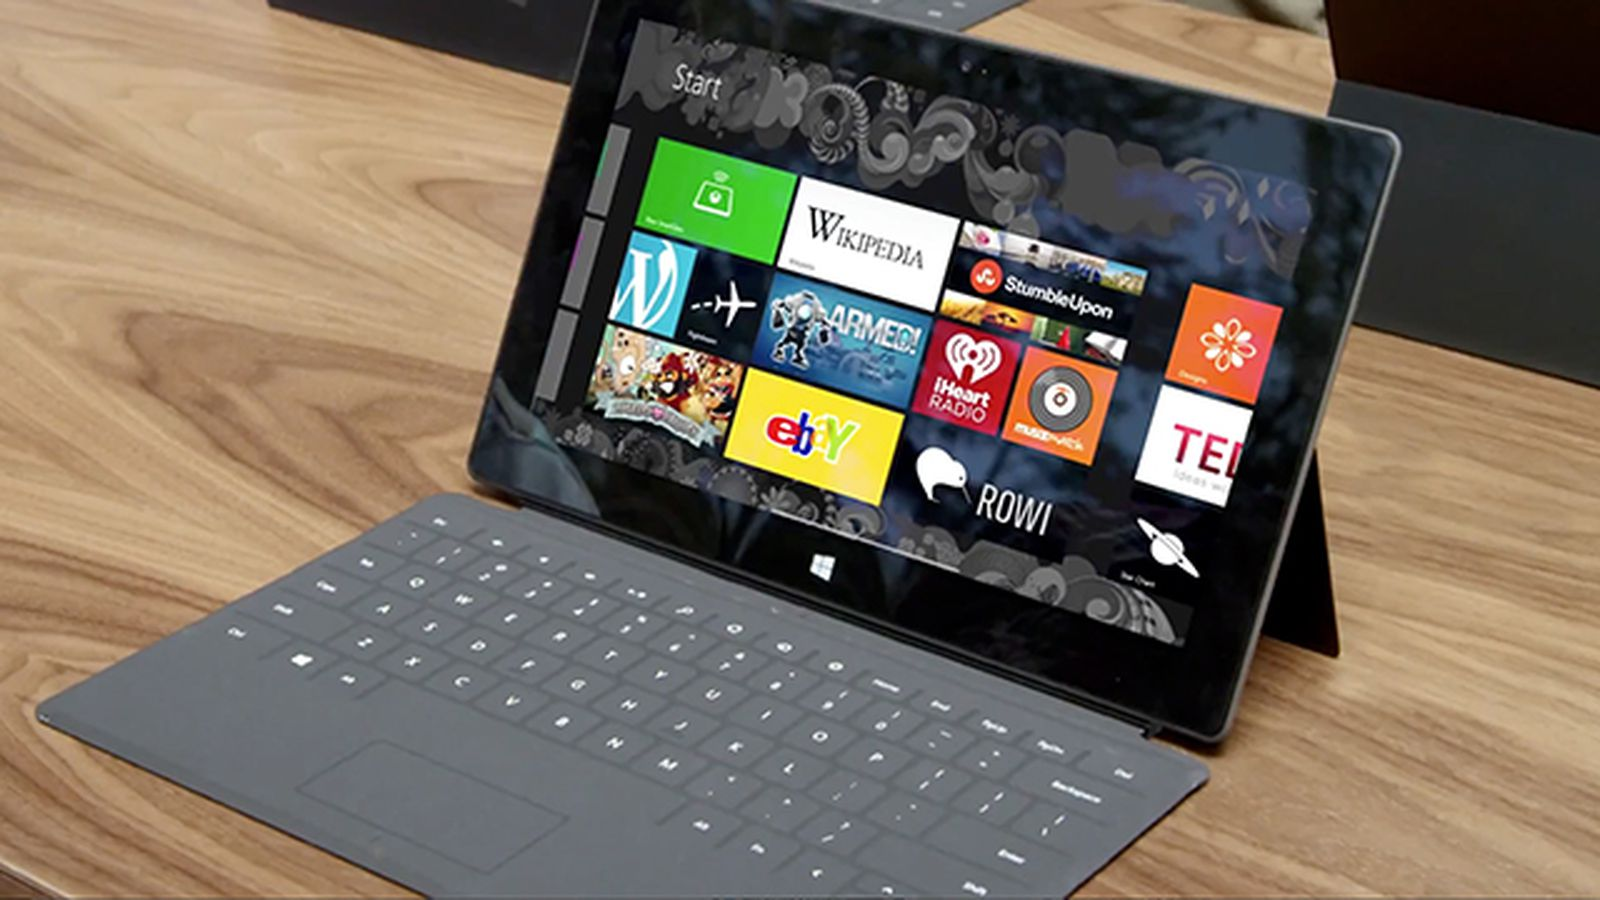 Microsoft surface rt goes on sale at best buy and staples today the verge - Surface vitree rt 2012 ...